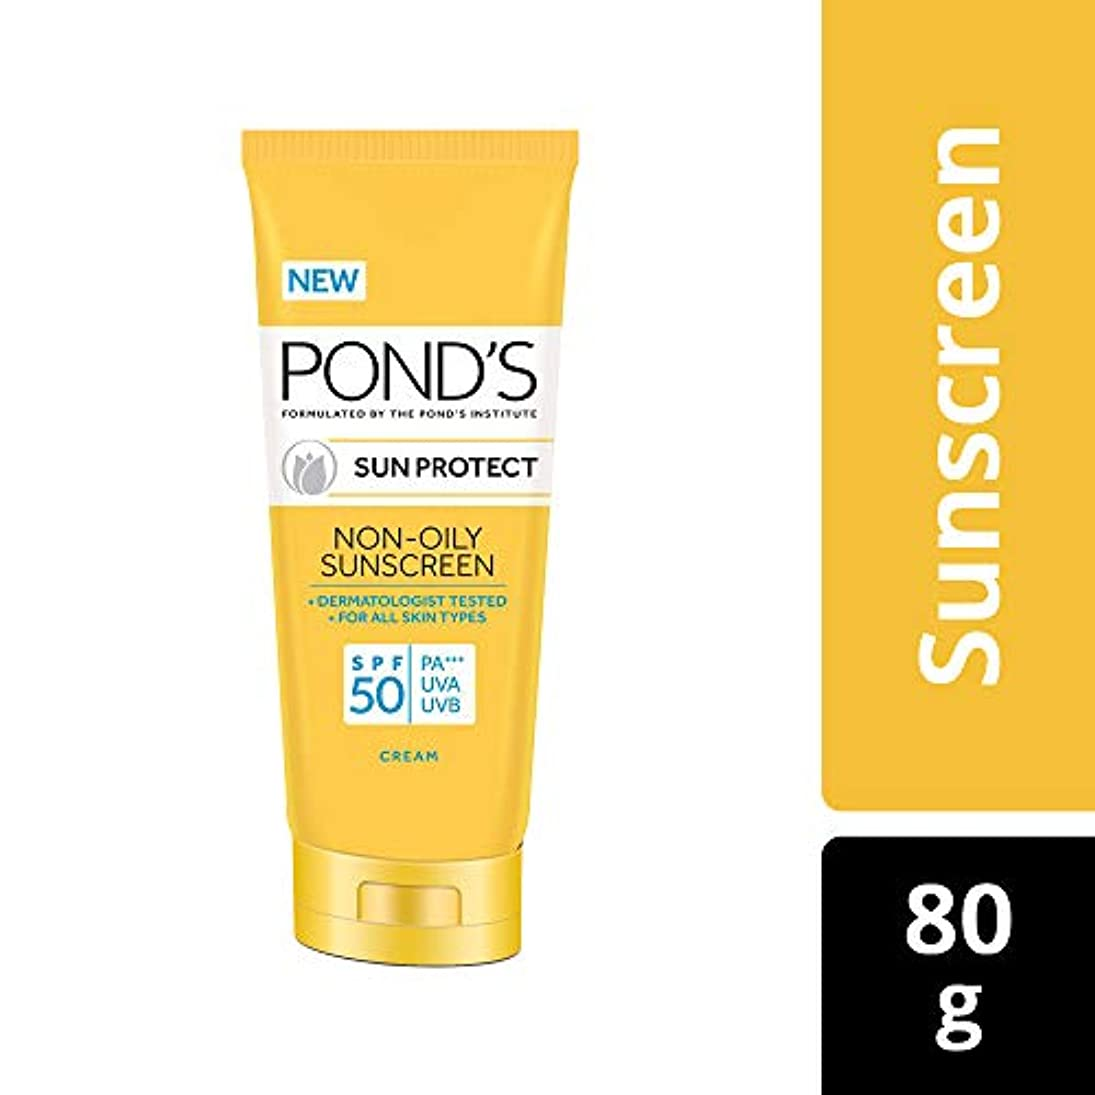 職人フォージシミュレートするPOND'S SPF 50 Sun Protect Non-Oily Sunscreen, 80 g